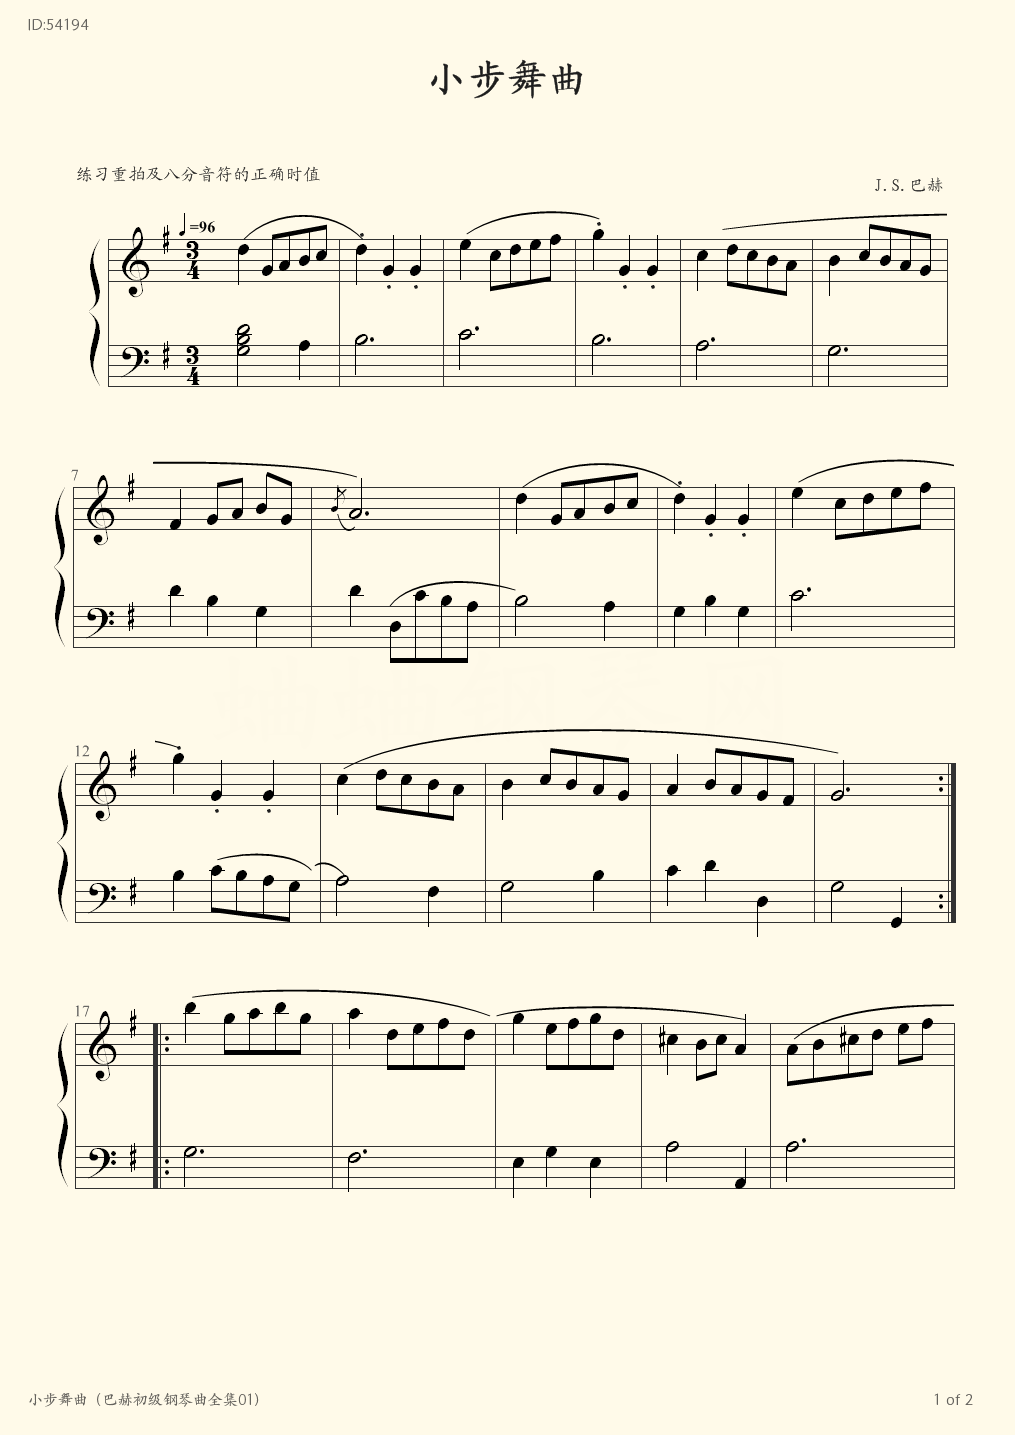 01 - Bach - first page